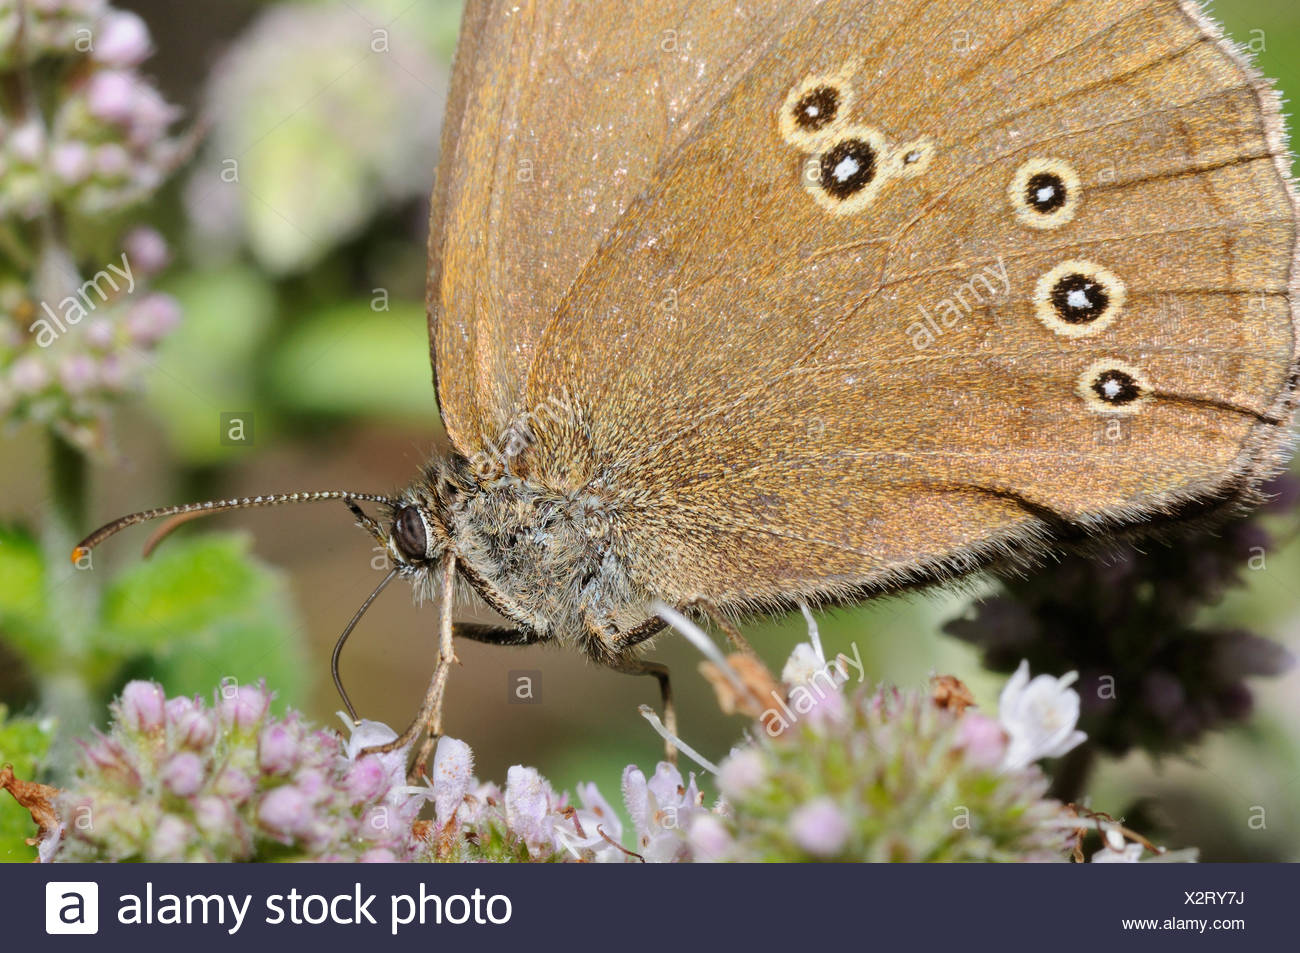 Ringlet foraging on a flower - Northern Vosges France - Stock Image